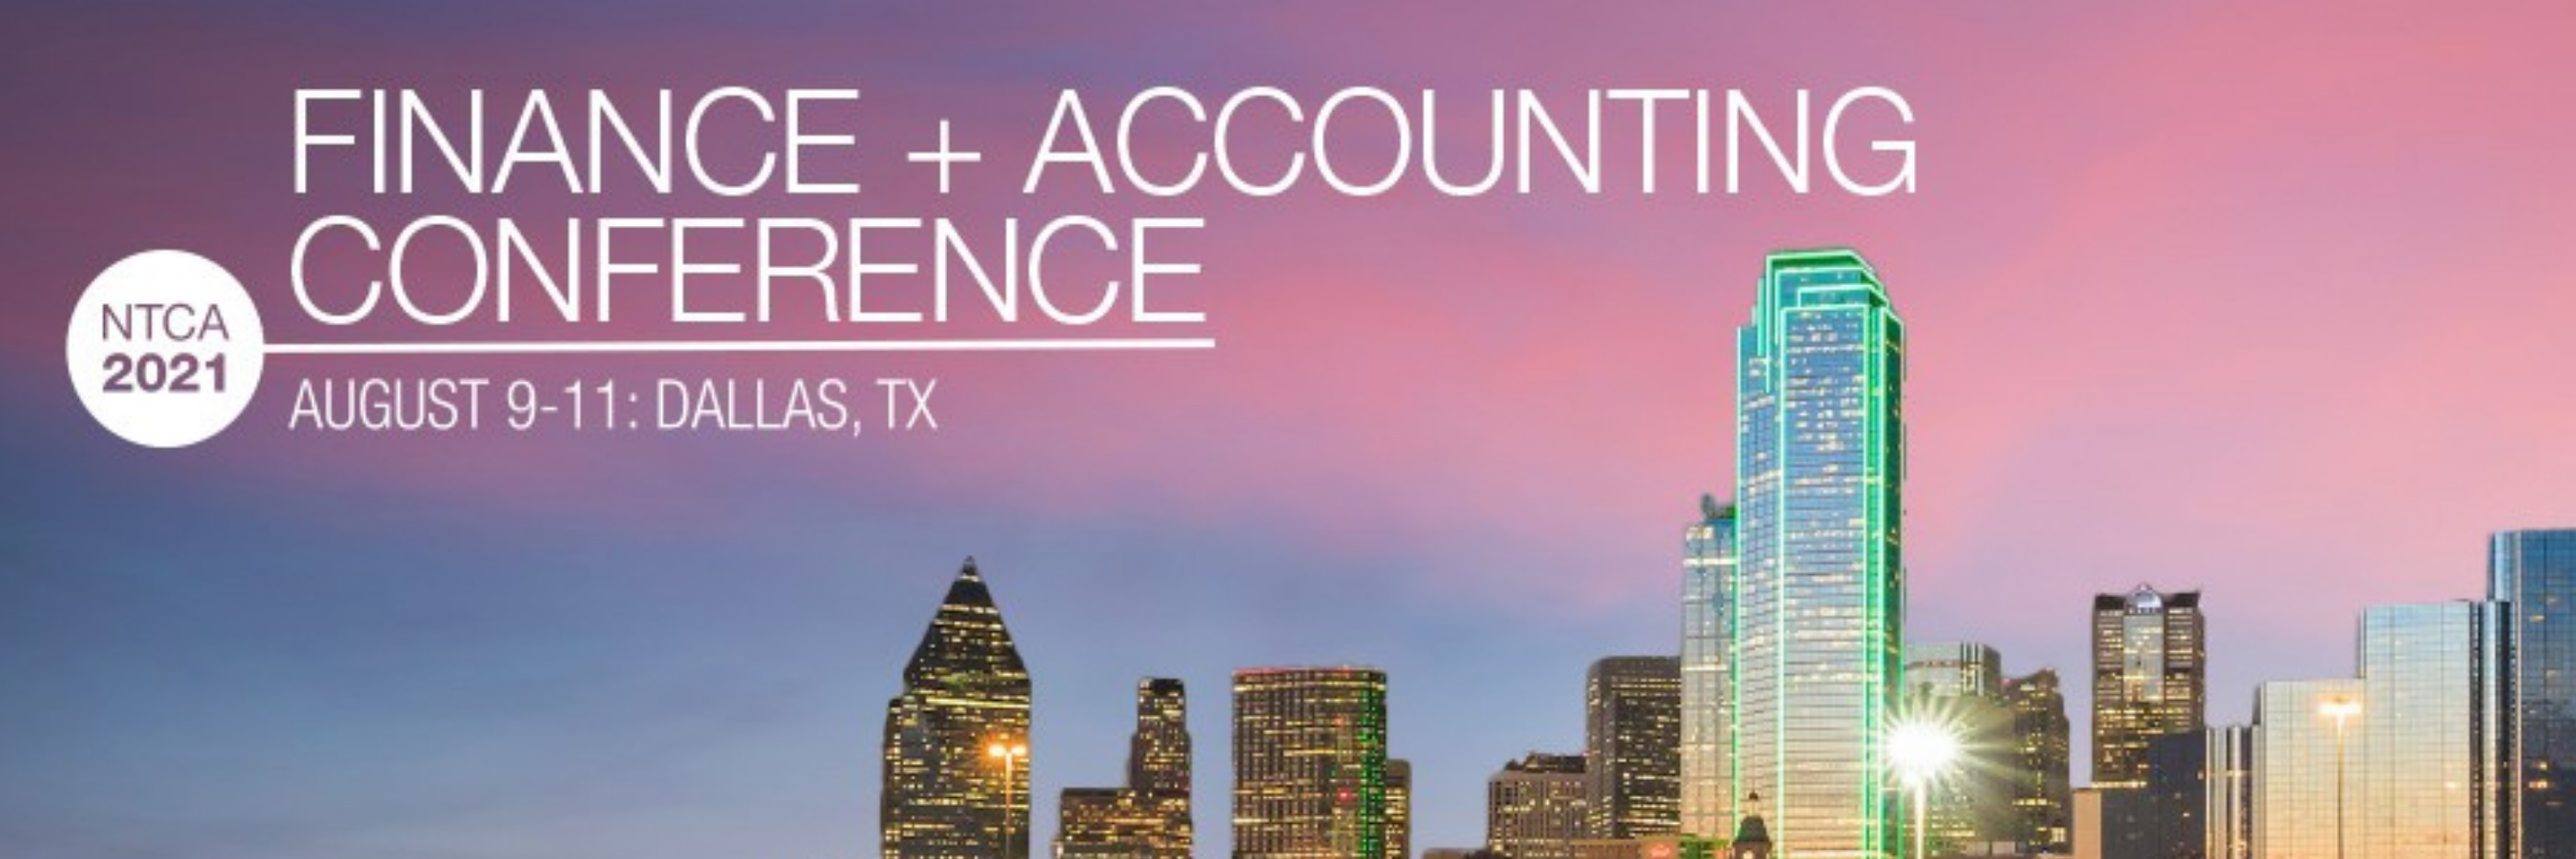 finance-accounting-conference-logo